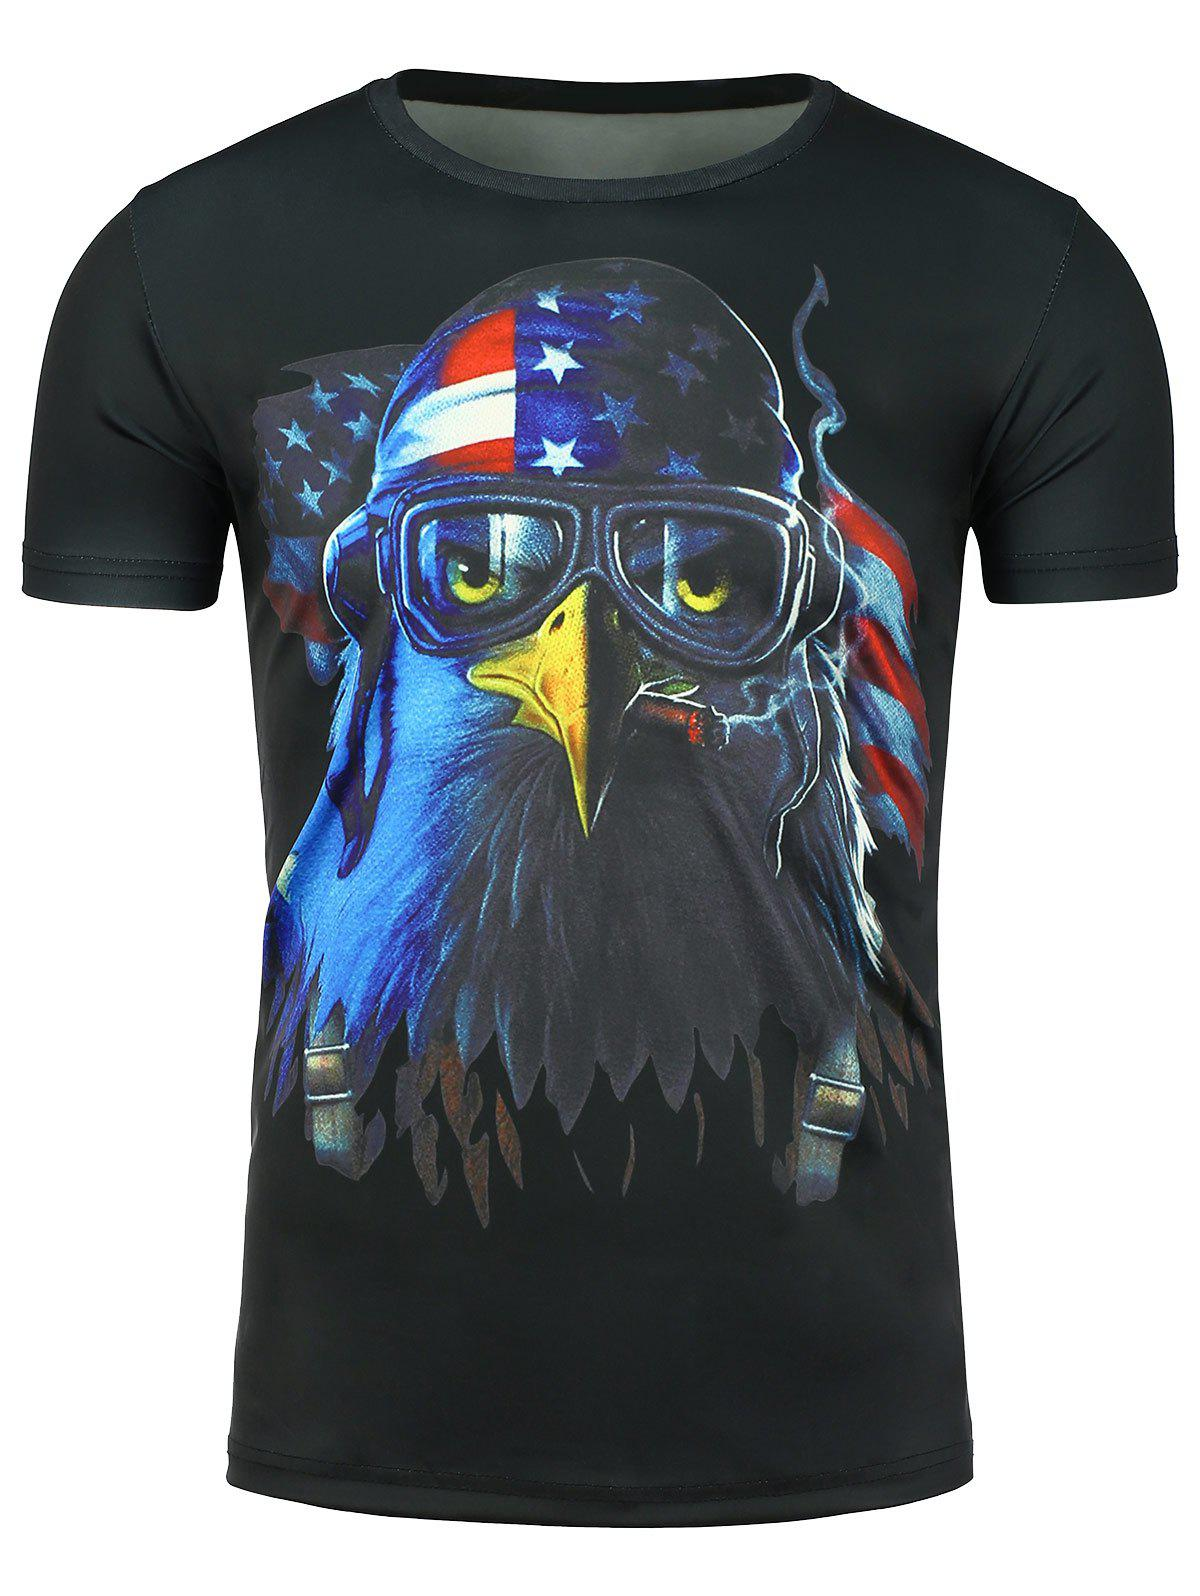 3D Eagle Print Patriotic Short Sleeve T-shirt